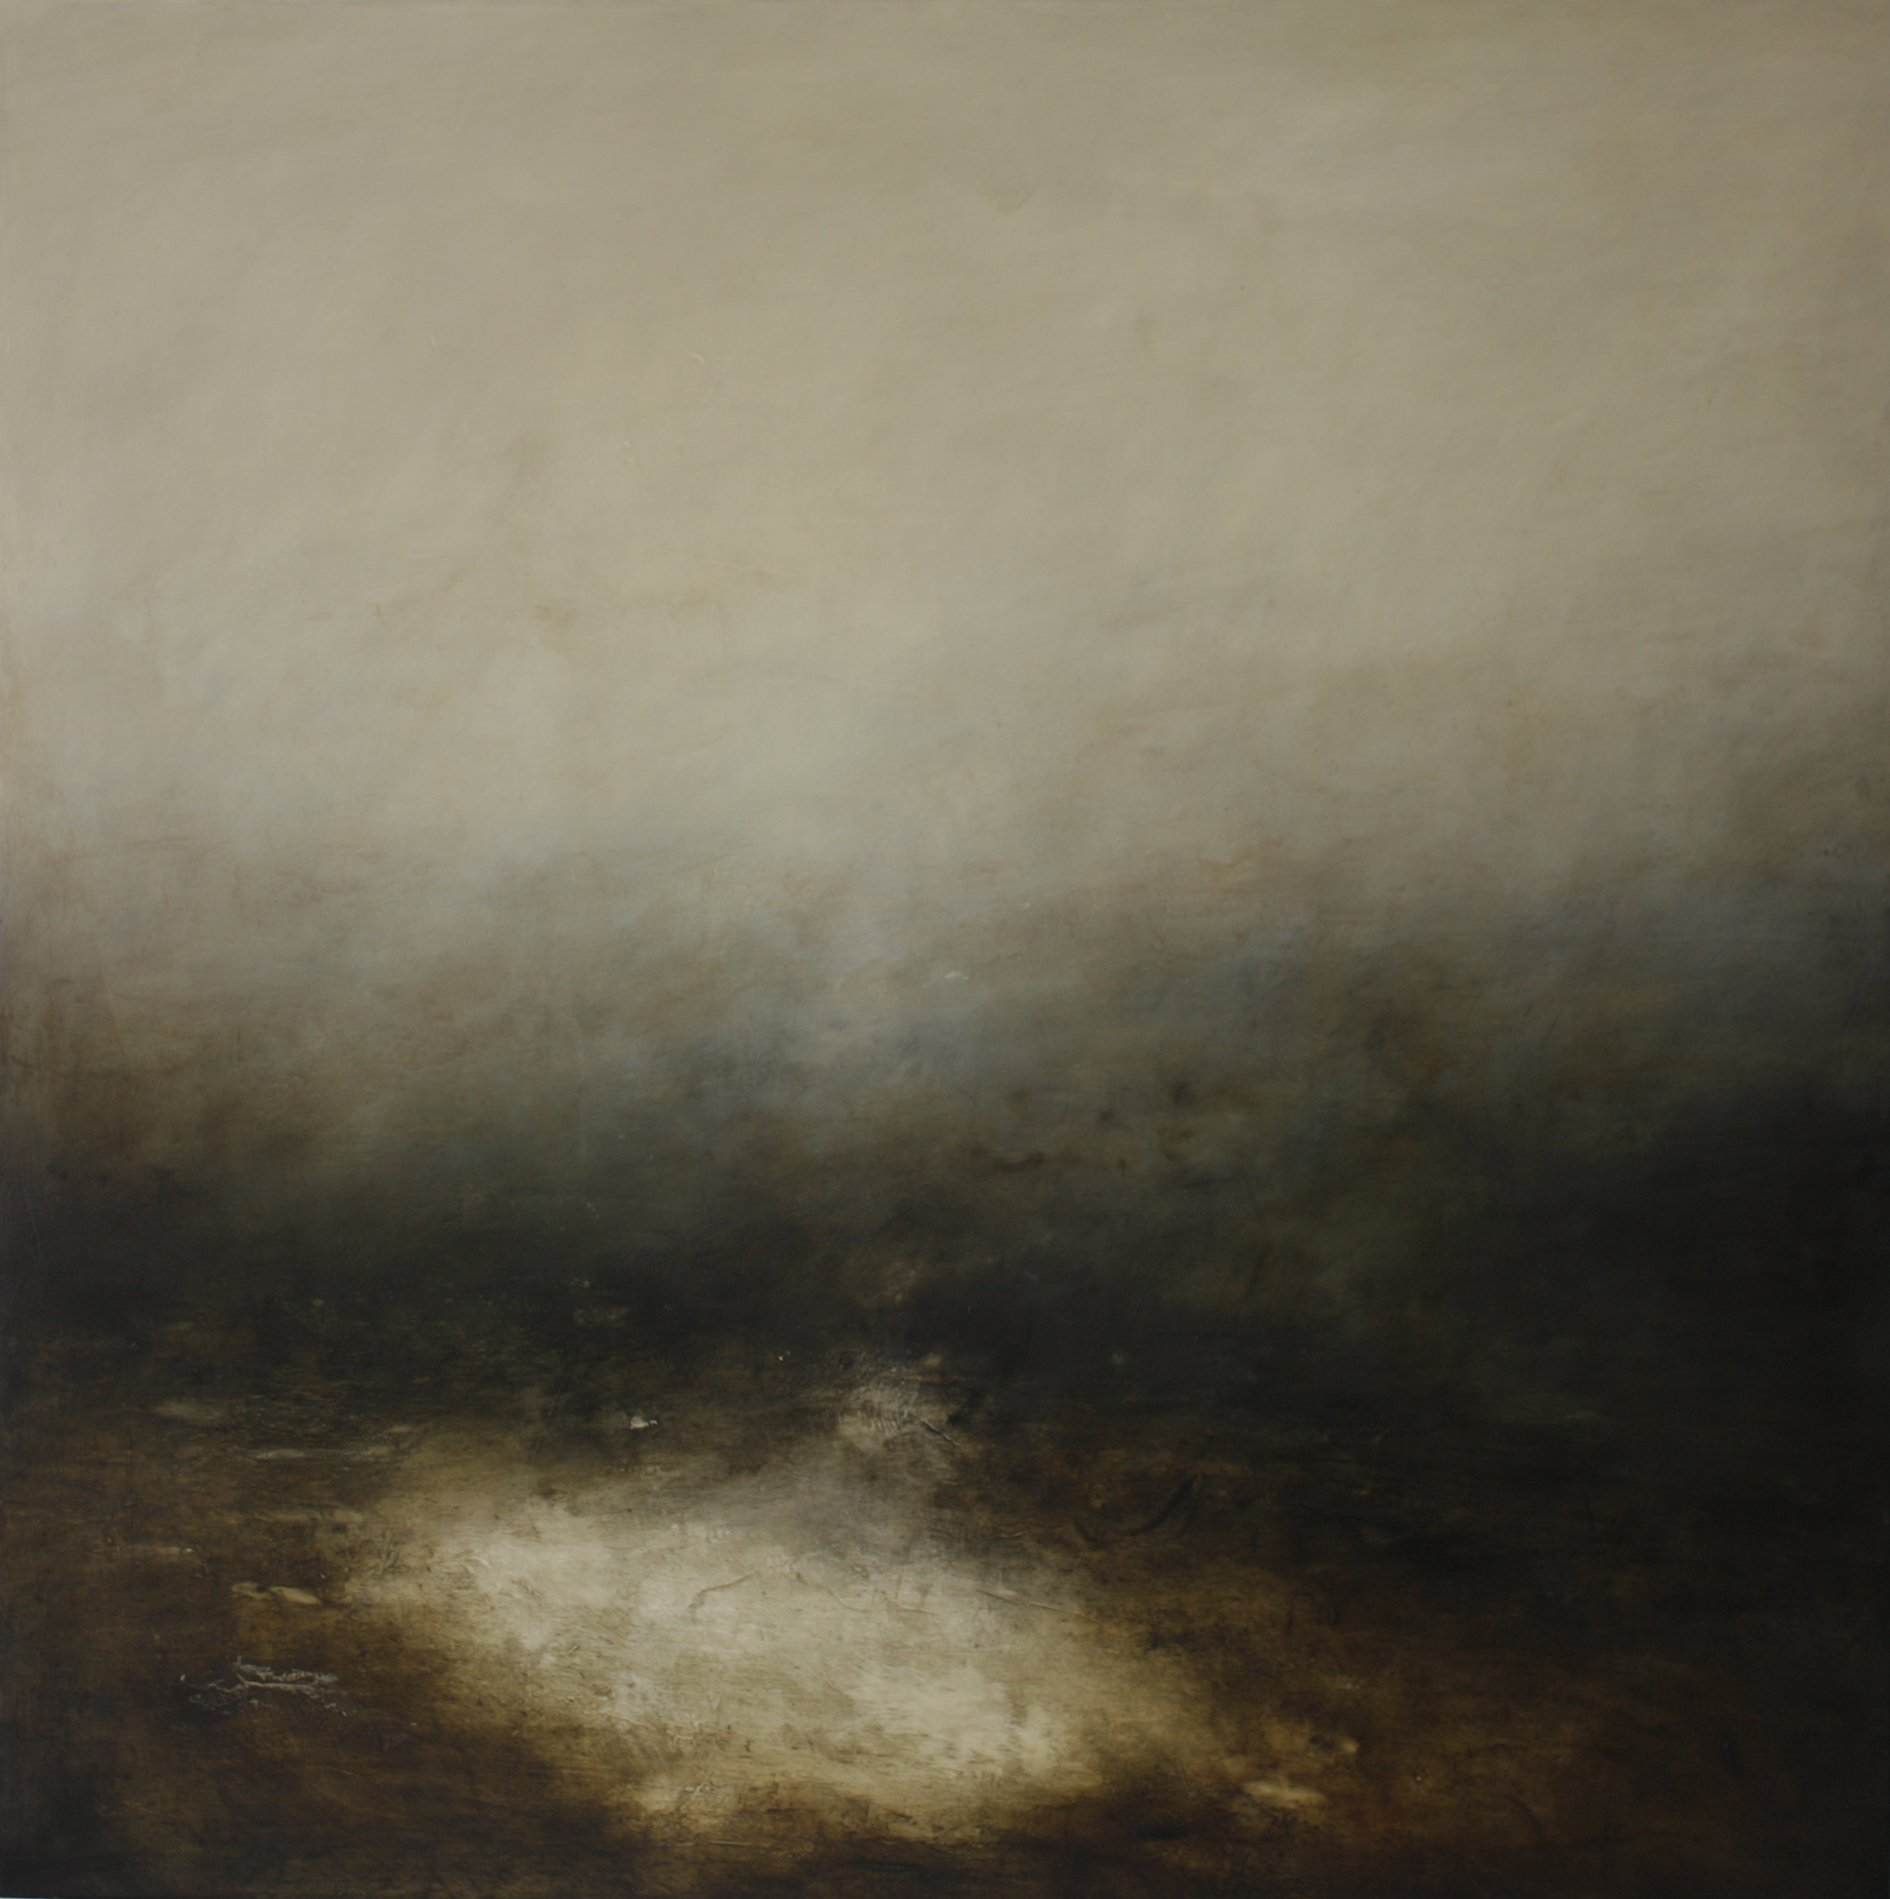 Artist: Victoria Graimes  Title: Hinterland  Size: 130 x 130 cm  Medium: Oil on canvas  Price: £4000   Buy Now